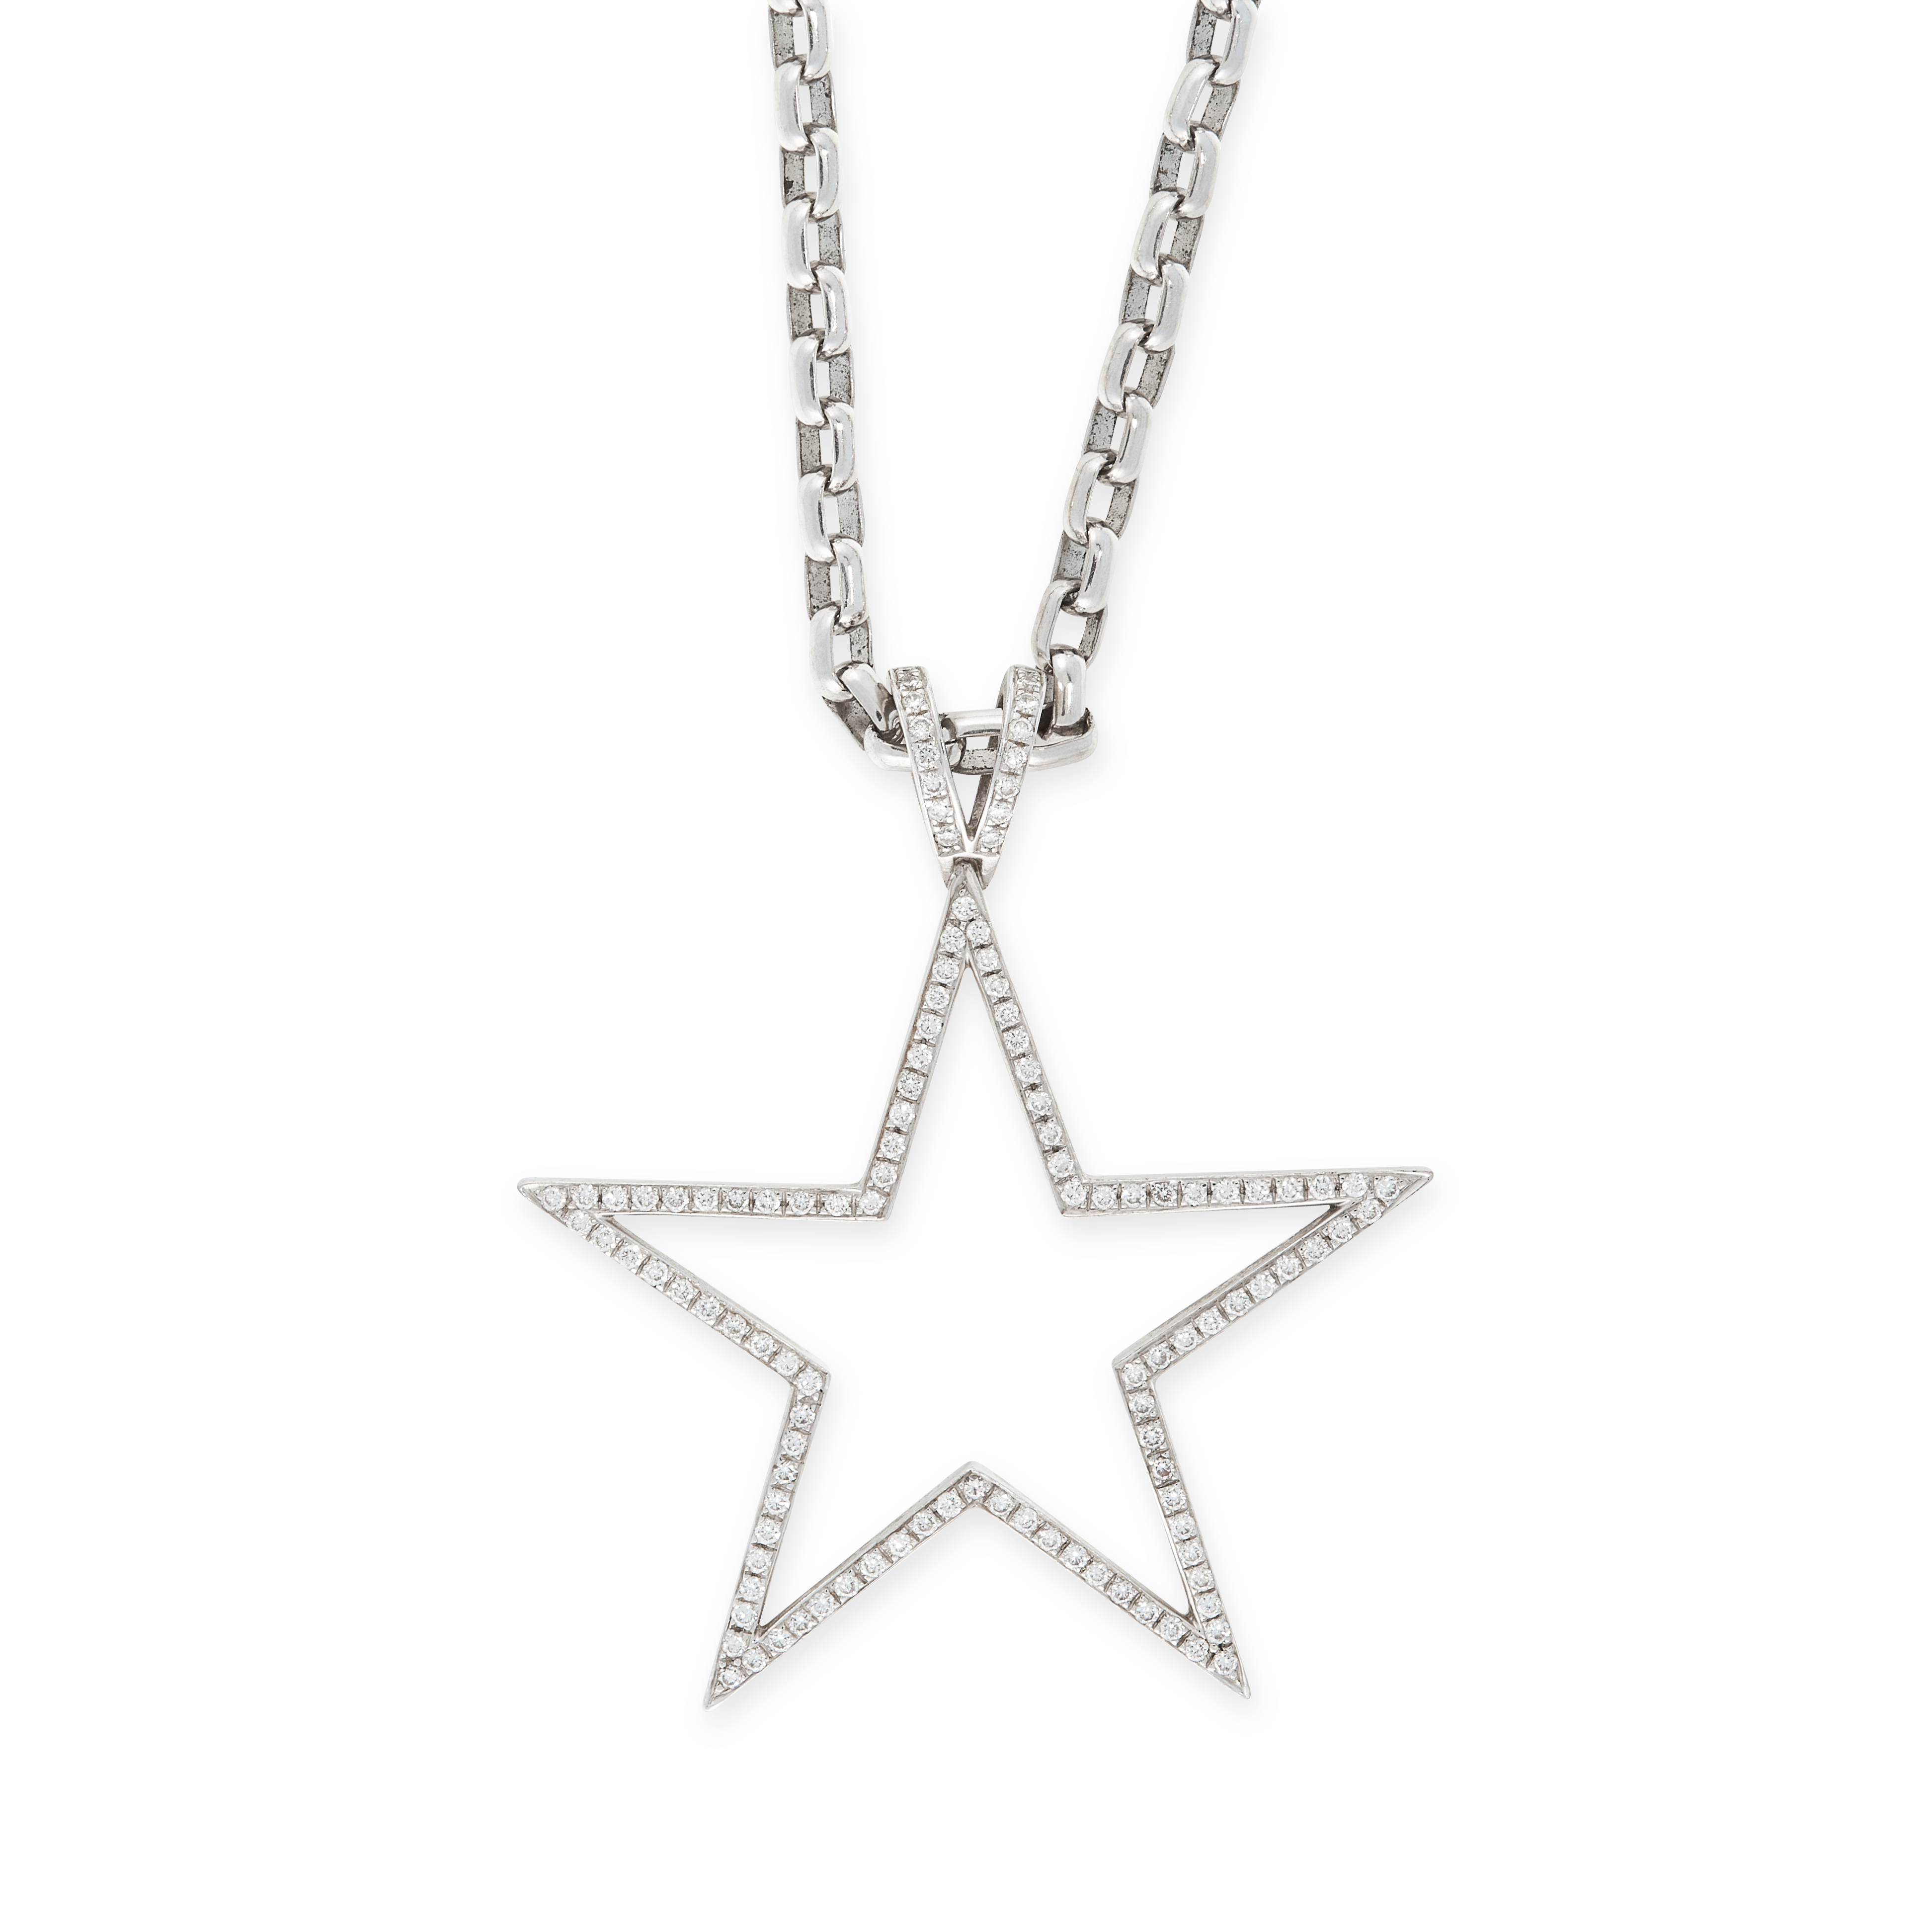 A DIAMOND STAR PENDANT AND CHAIN, THEO FENNELL in 18ct white gold, the pendant designed as the